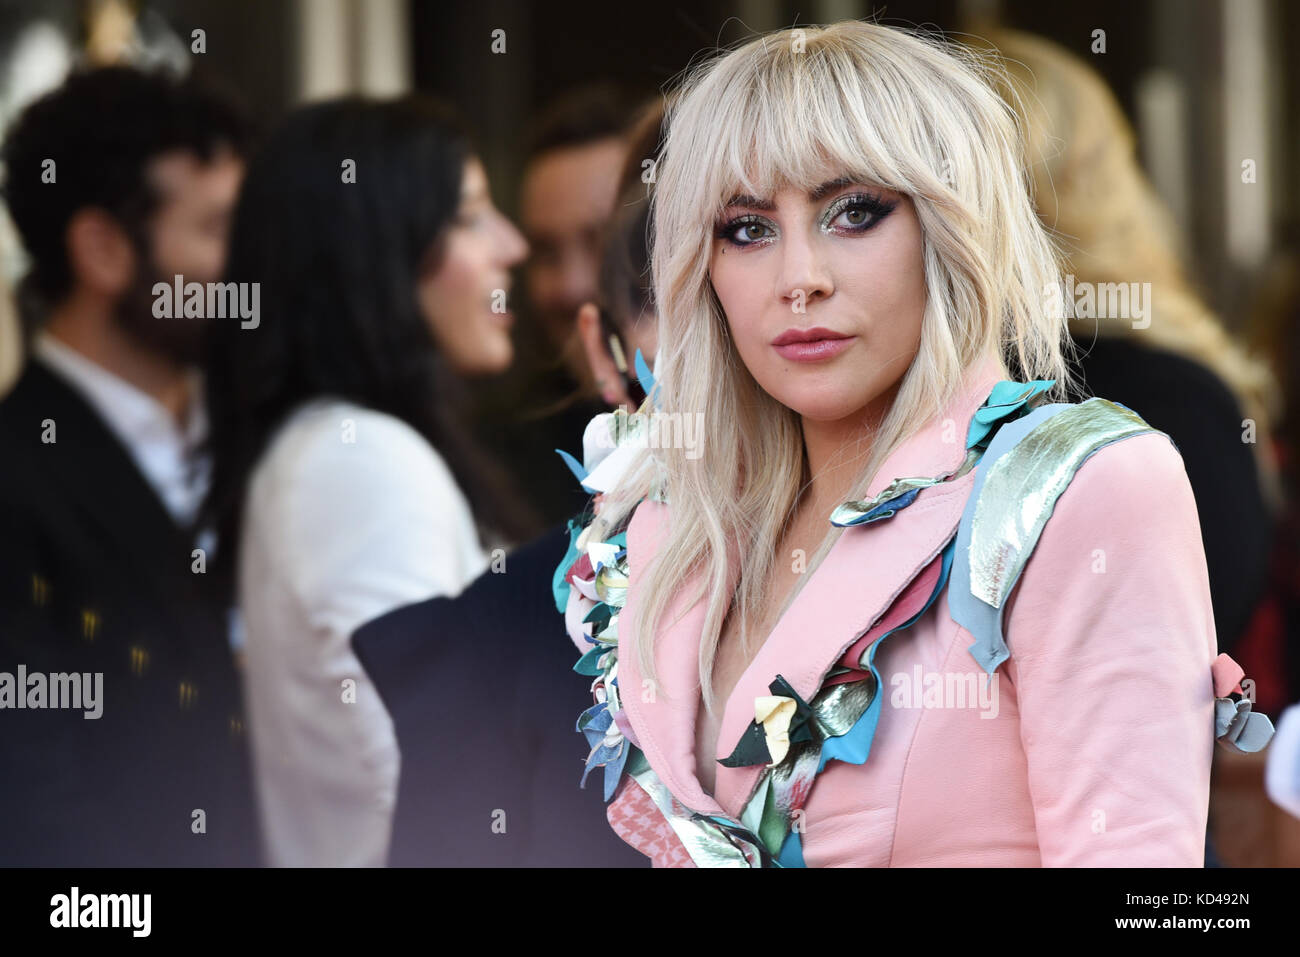 42nd Toronto International Film Festival - Lady Gaga Photocall  Featuring: Lady Gaga Where: Toronto, Canada When: Stock Photo